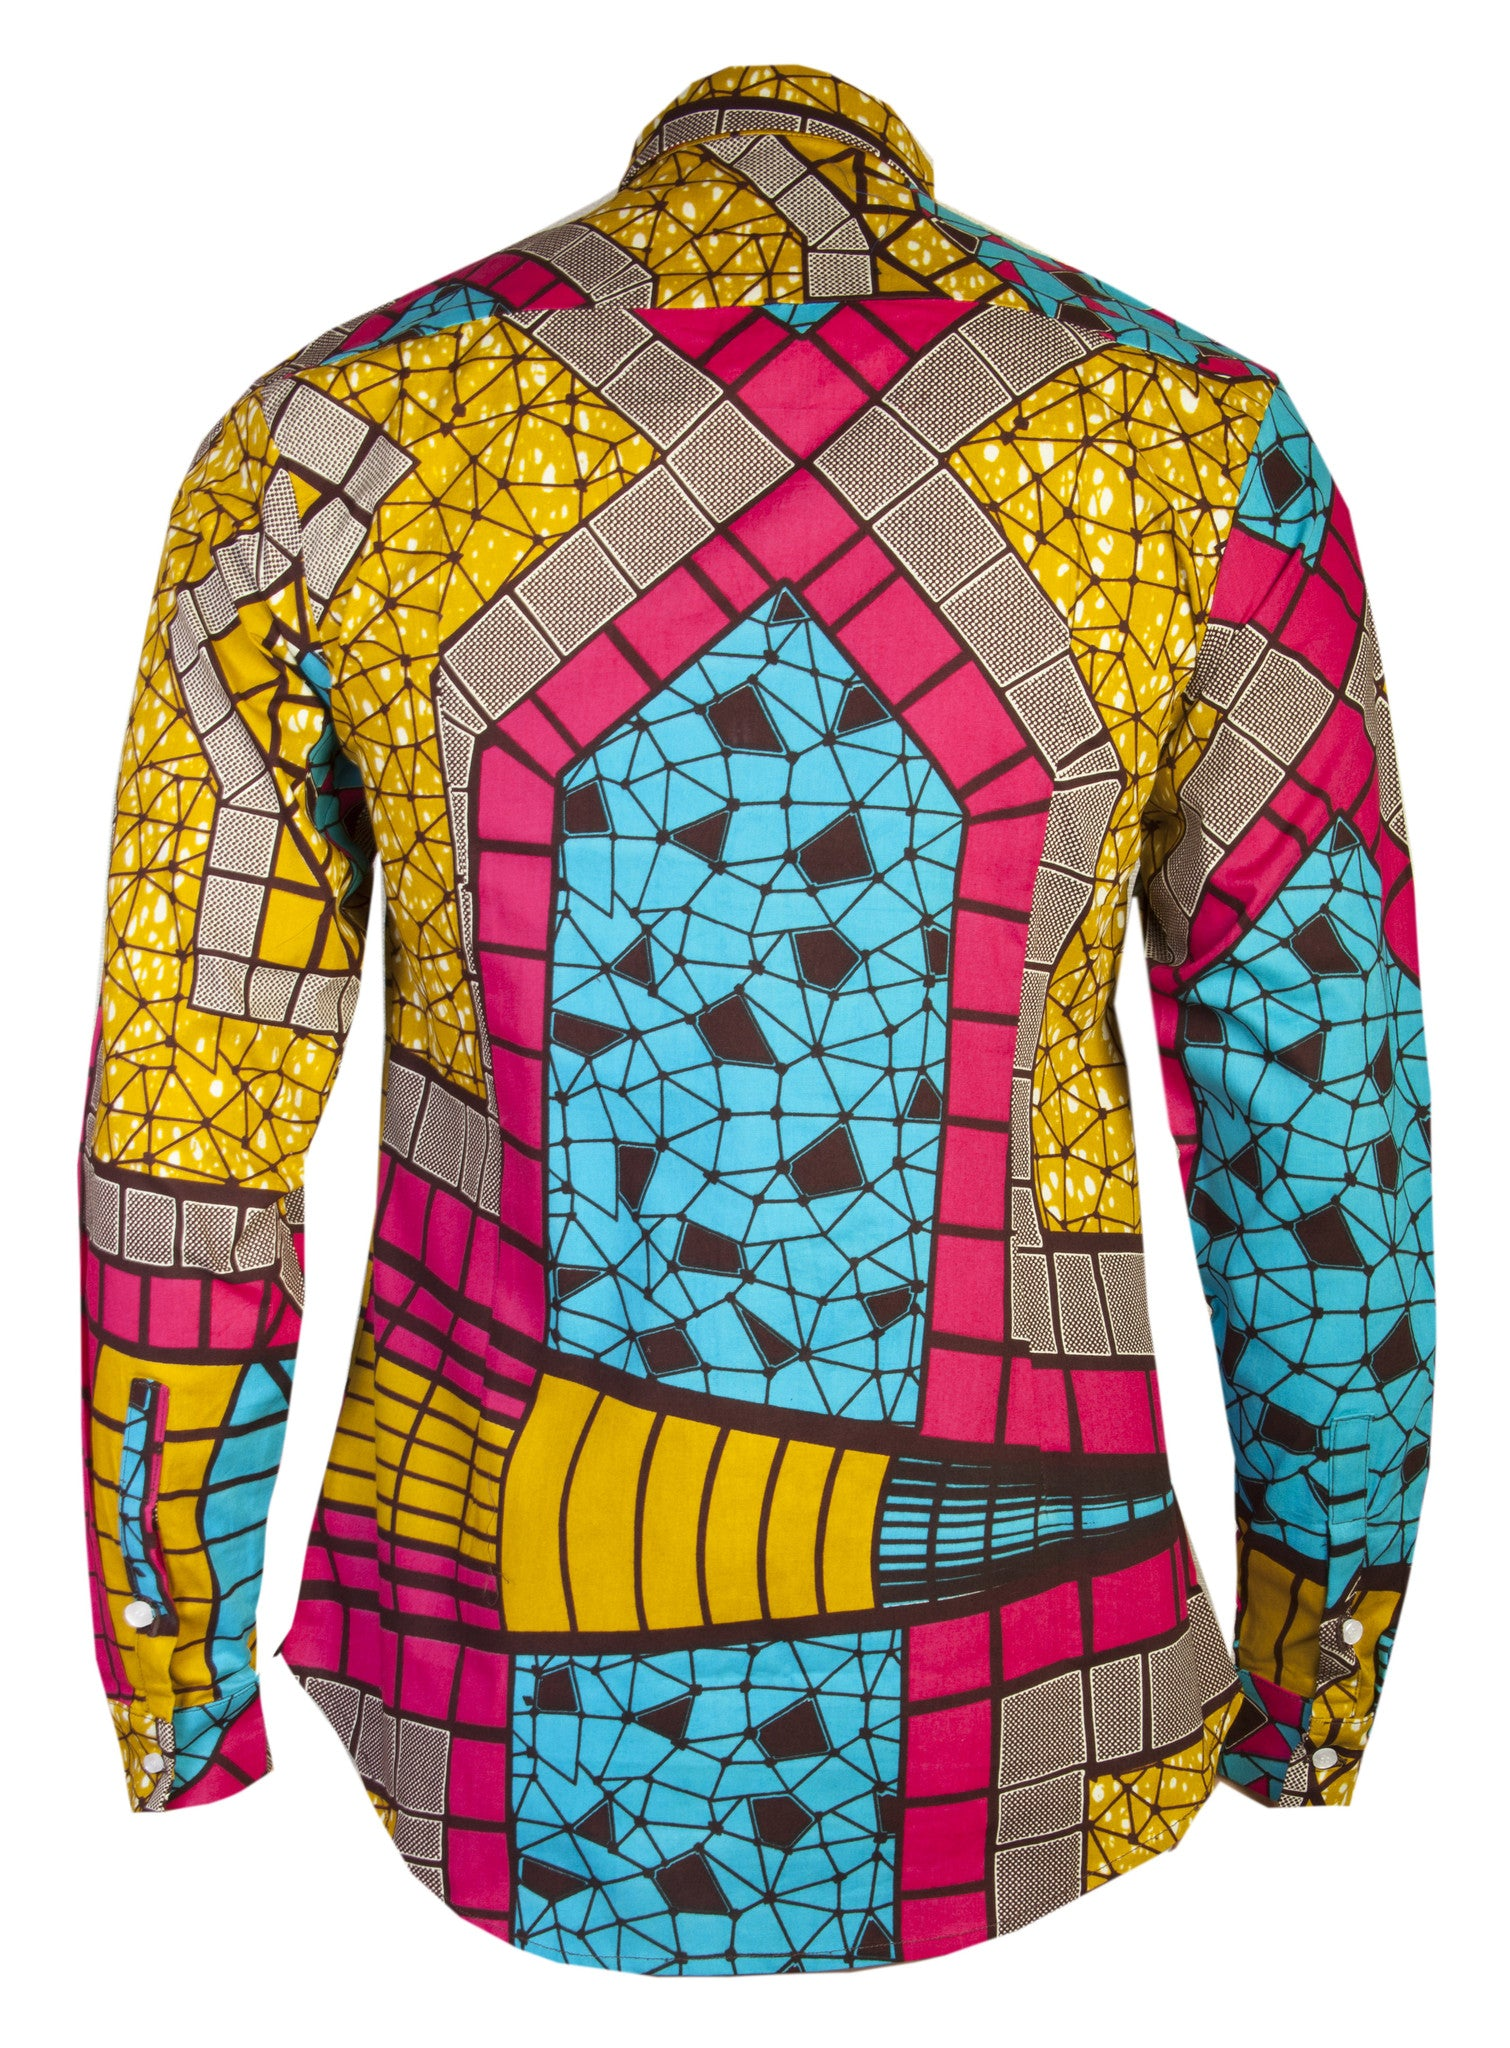 Men's printed shirt-Stain Glass tile - OHEMA OHENE AFRICAN INSPIRED FASHION  - 2